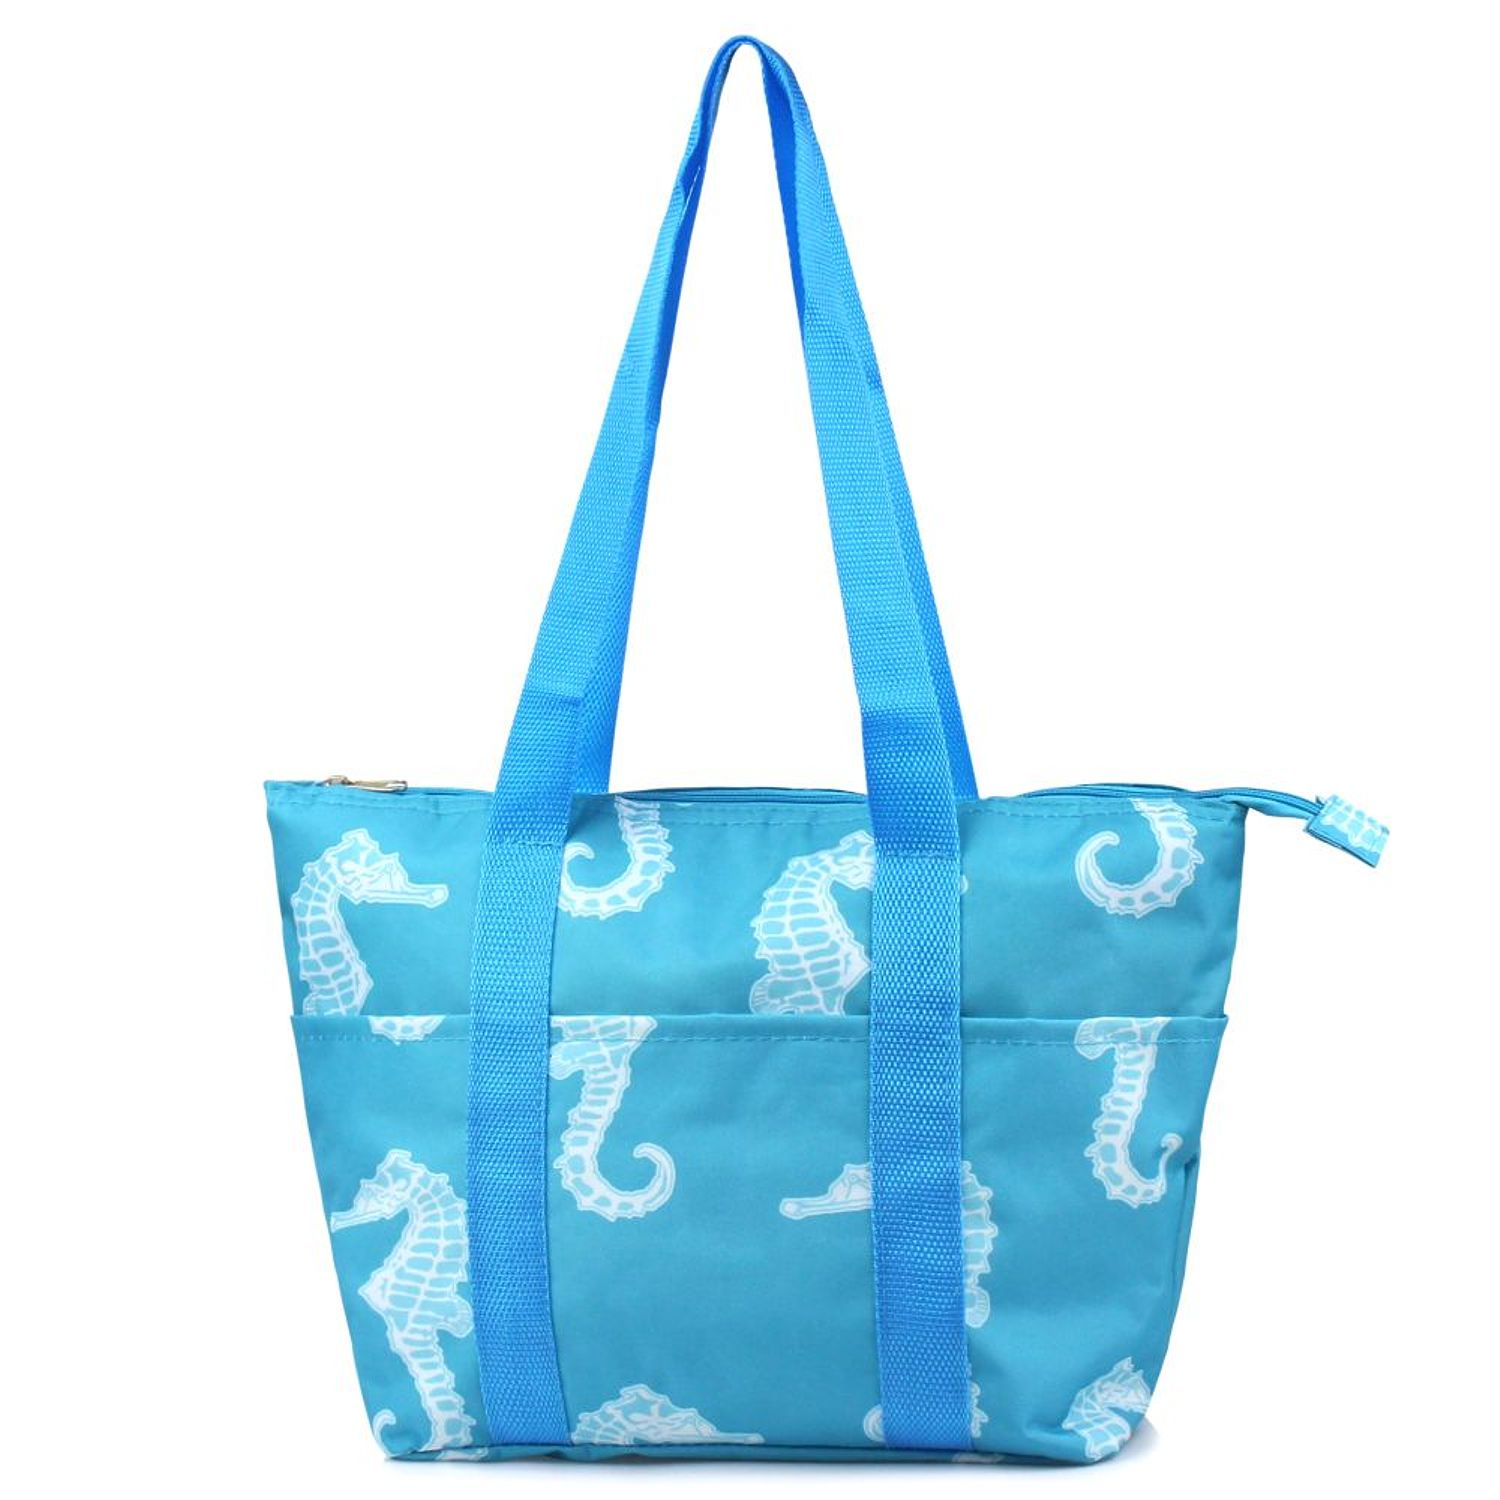 Zodaca Fashion Large Women Handbag Insulated Lunch Tote Zipper Double Handles Carry Bag for Travel Grocery Shopping - Seahorse